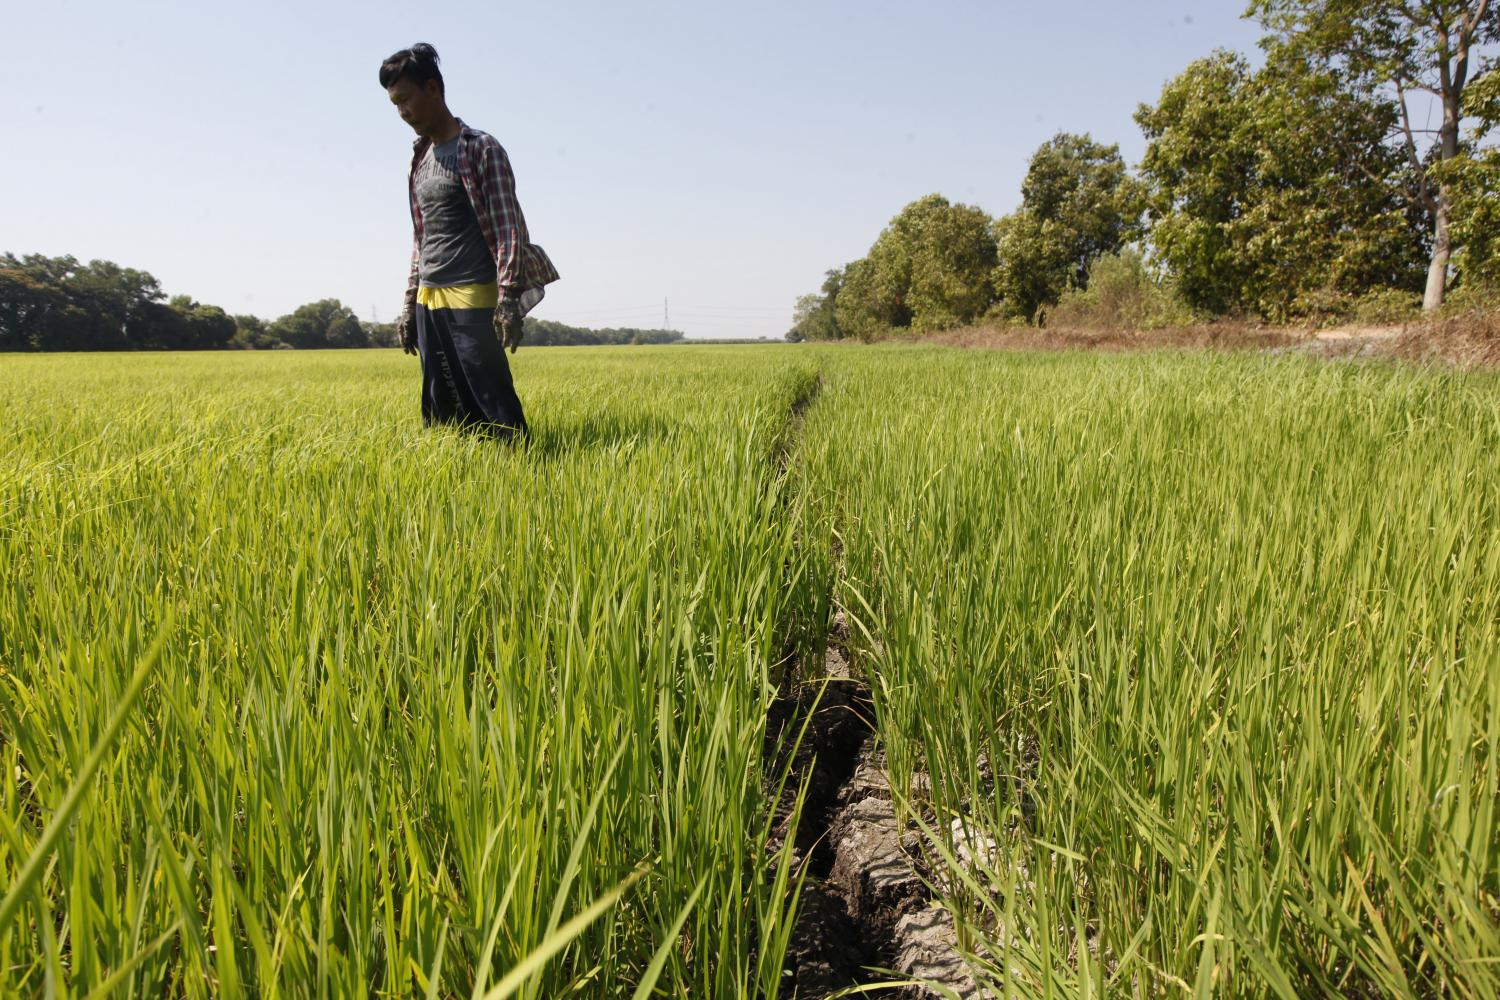 Drought has hit many areas of Pathum Thani province, creating lower supplies of farm products, particularly 'hom mali' fragrant rice.WICHAN CHAROENKIATPAKUL